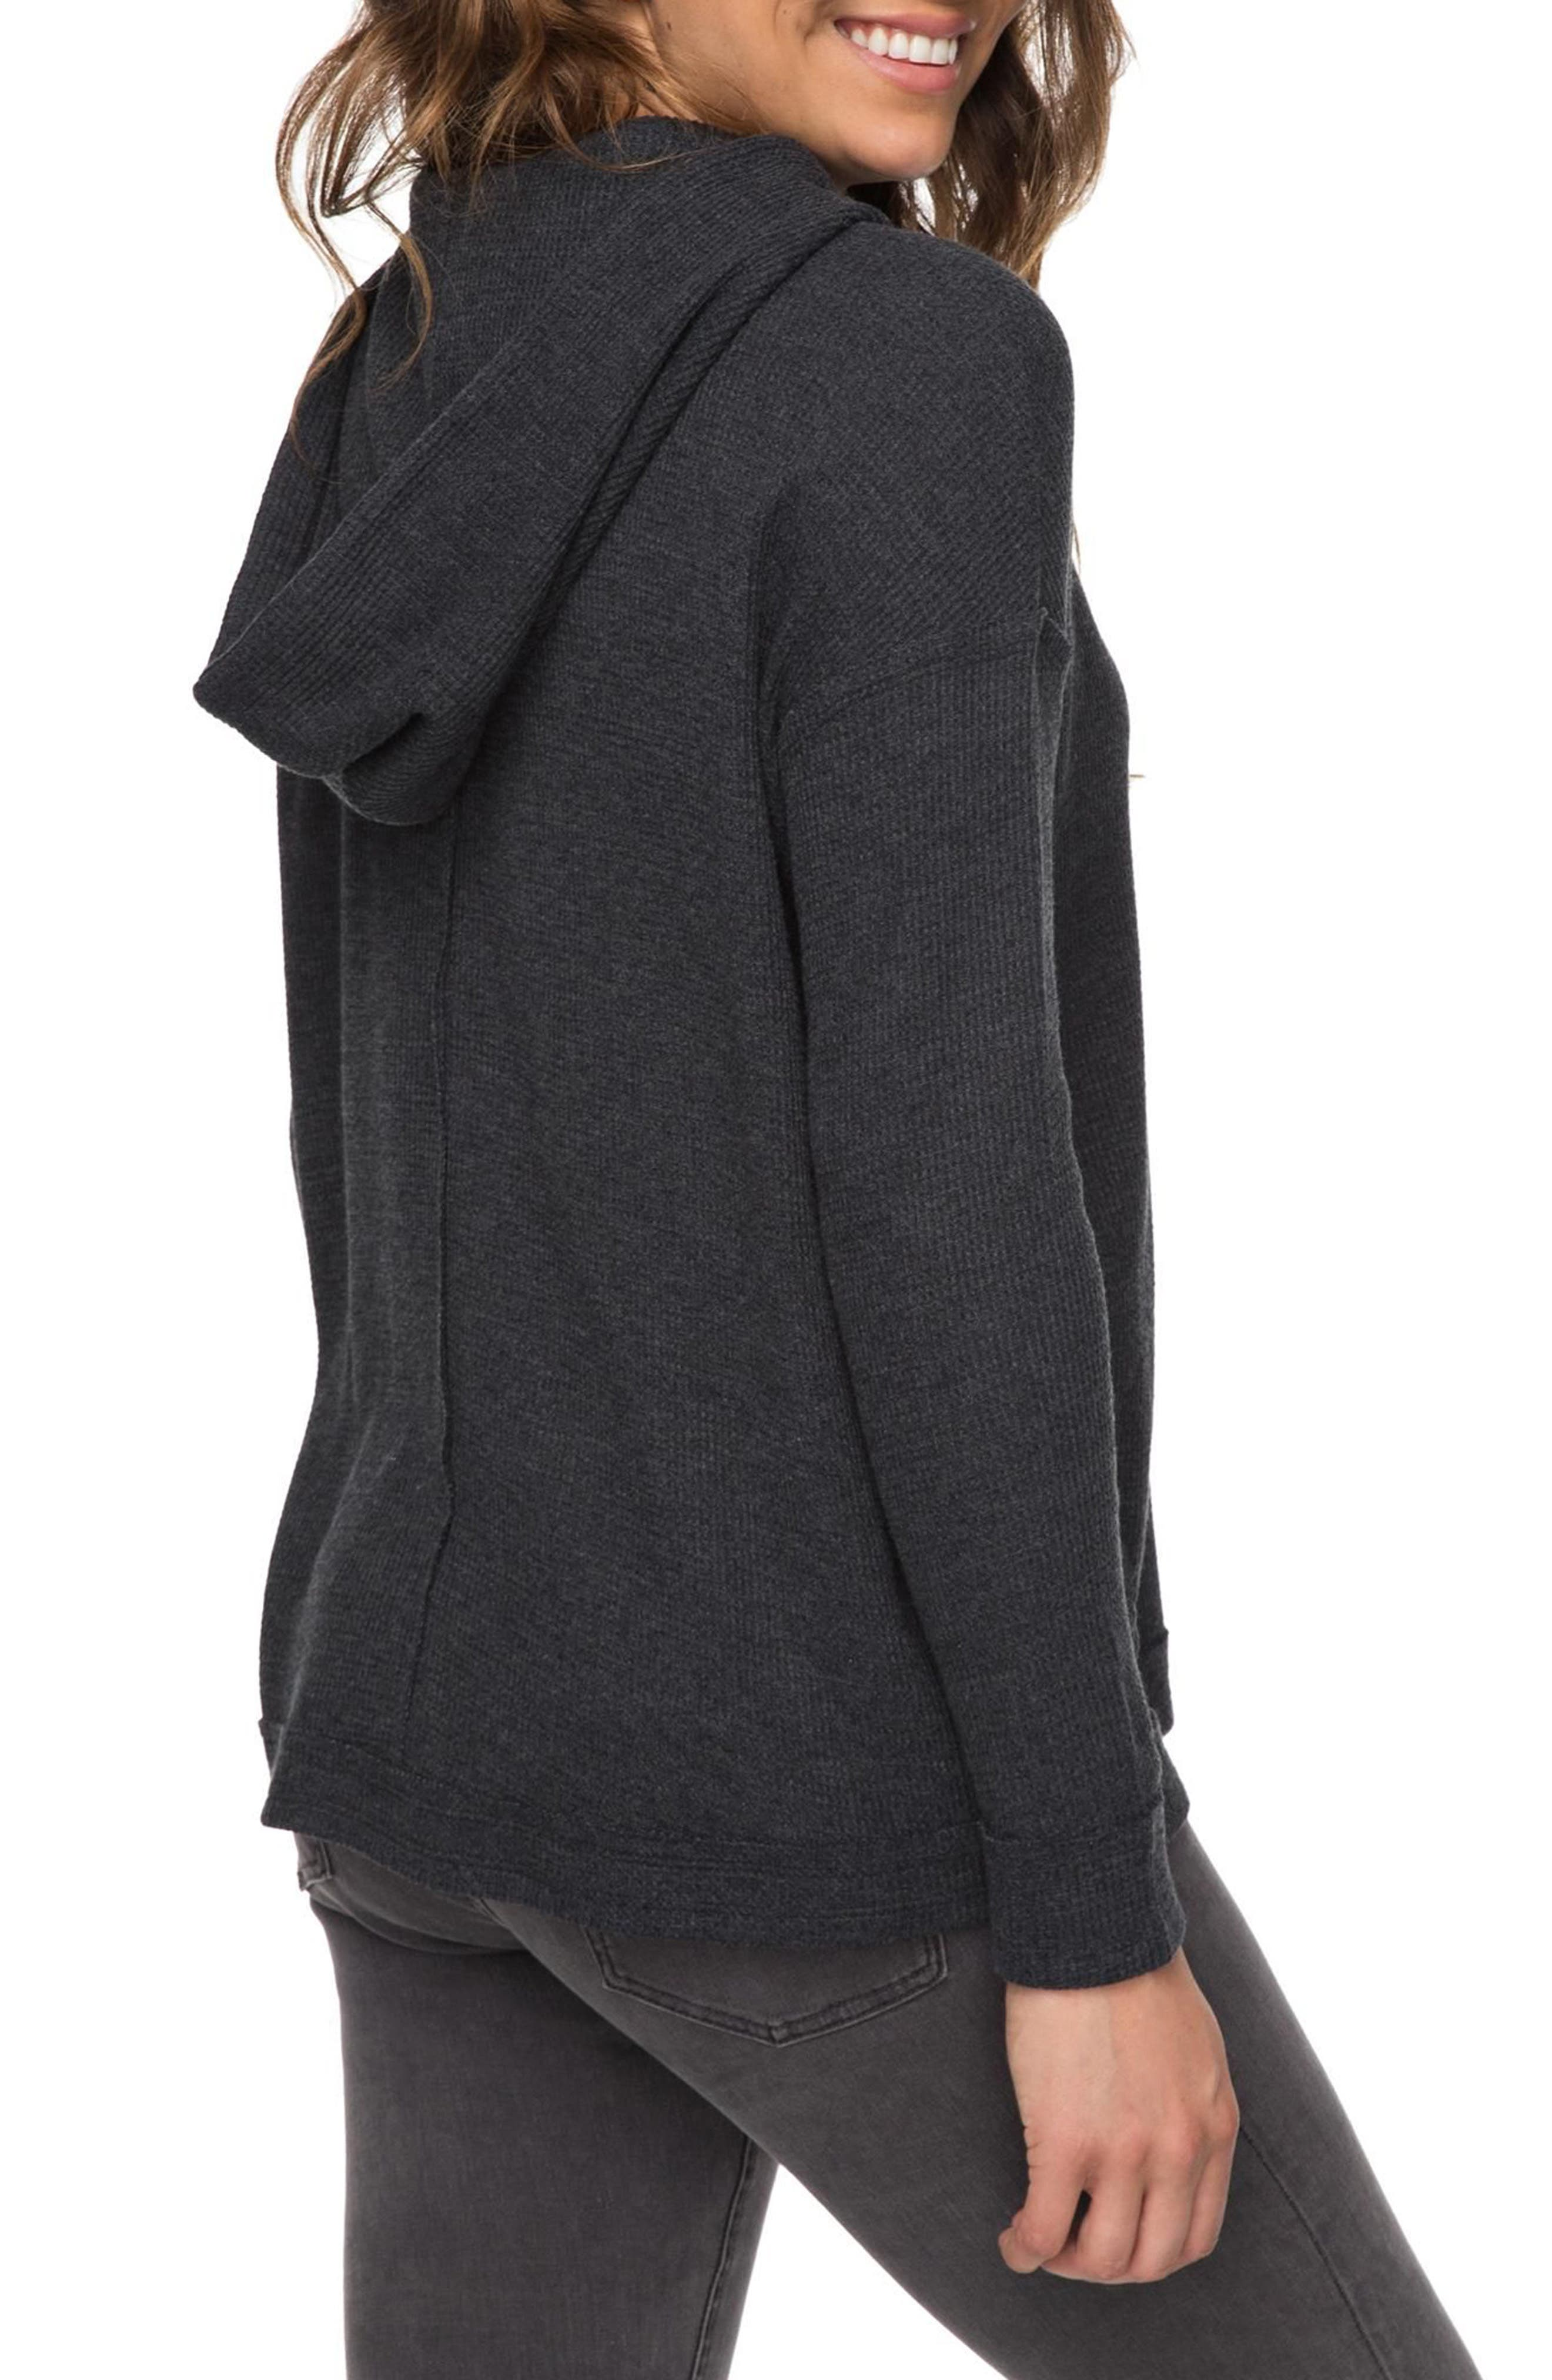 Alternate Image 3  - Roxy Wanted and Wild Hooded Thermal Top